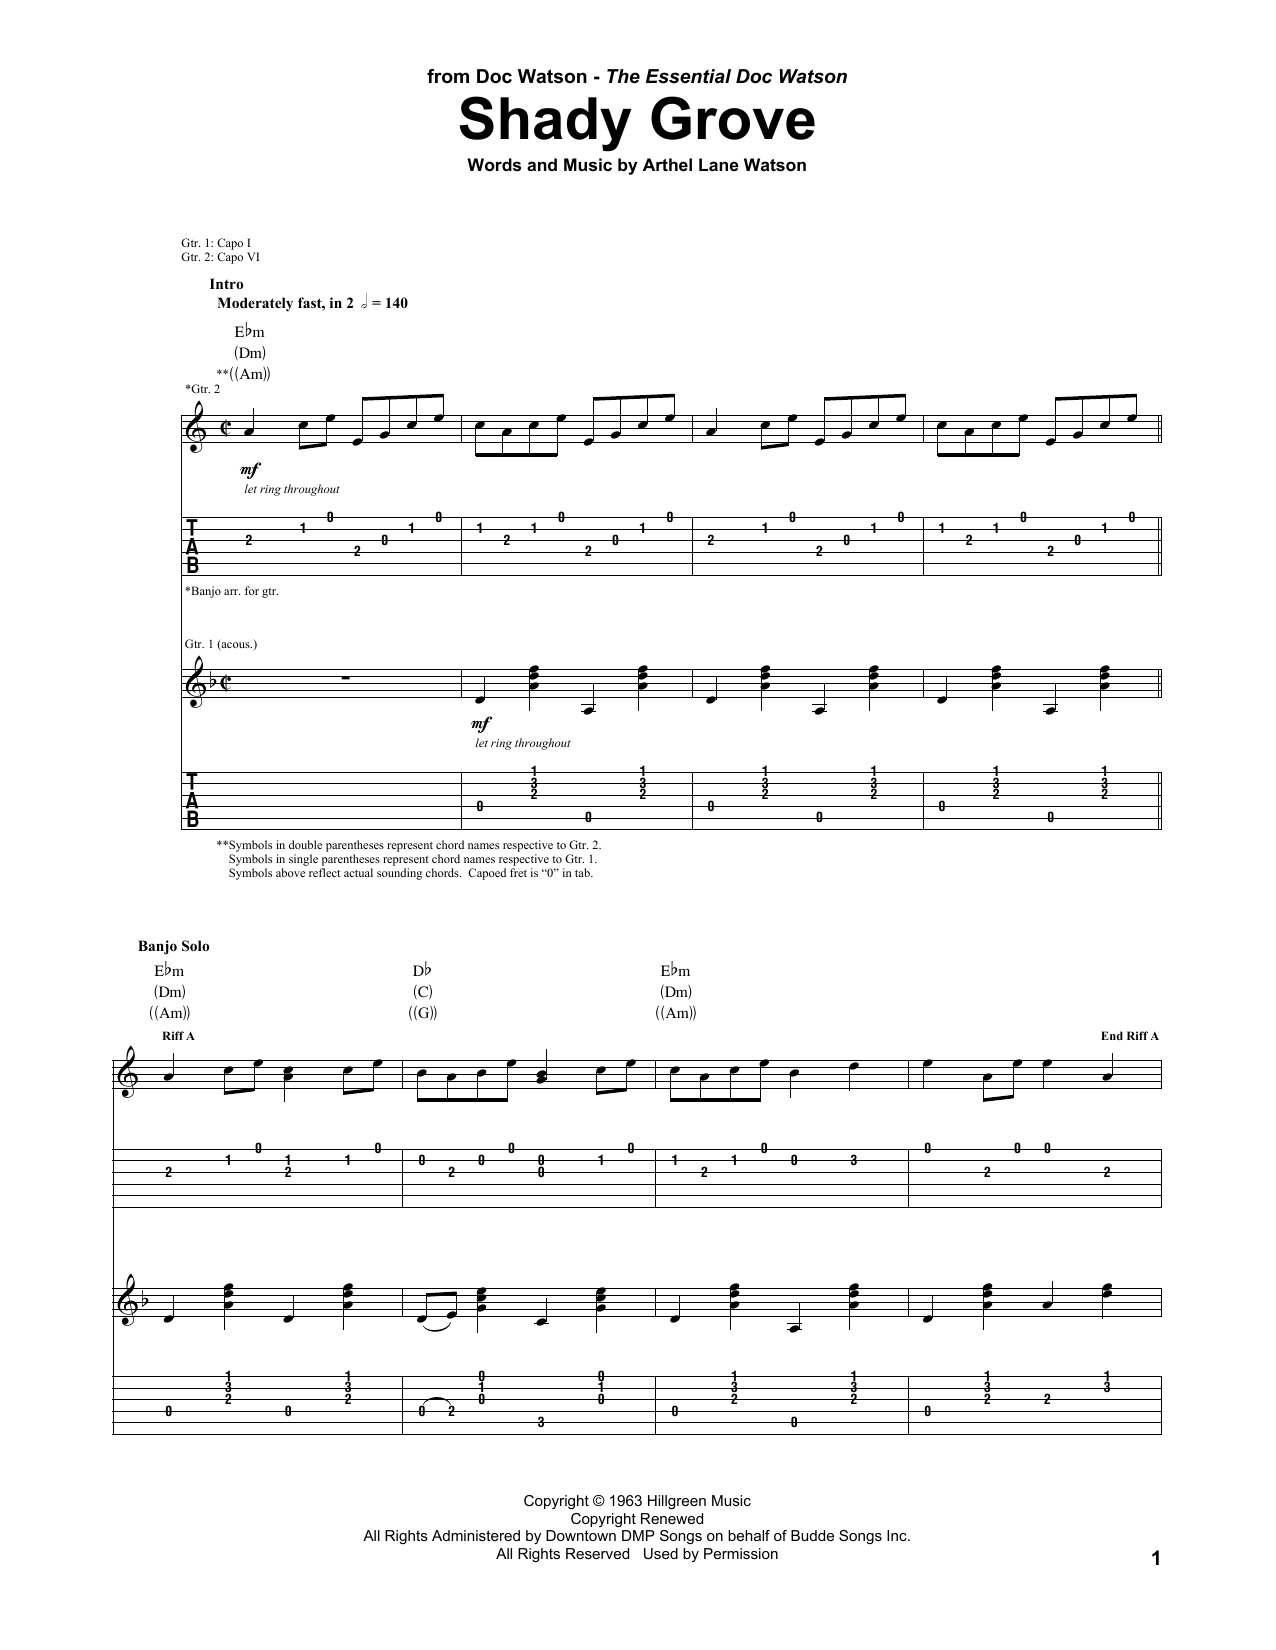 Shady grove sheet music direct for Shady grove